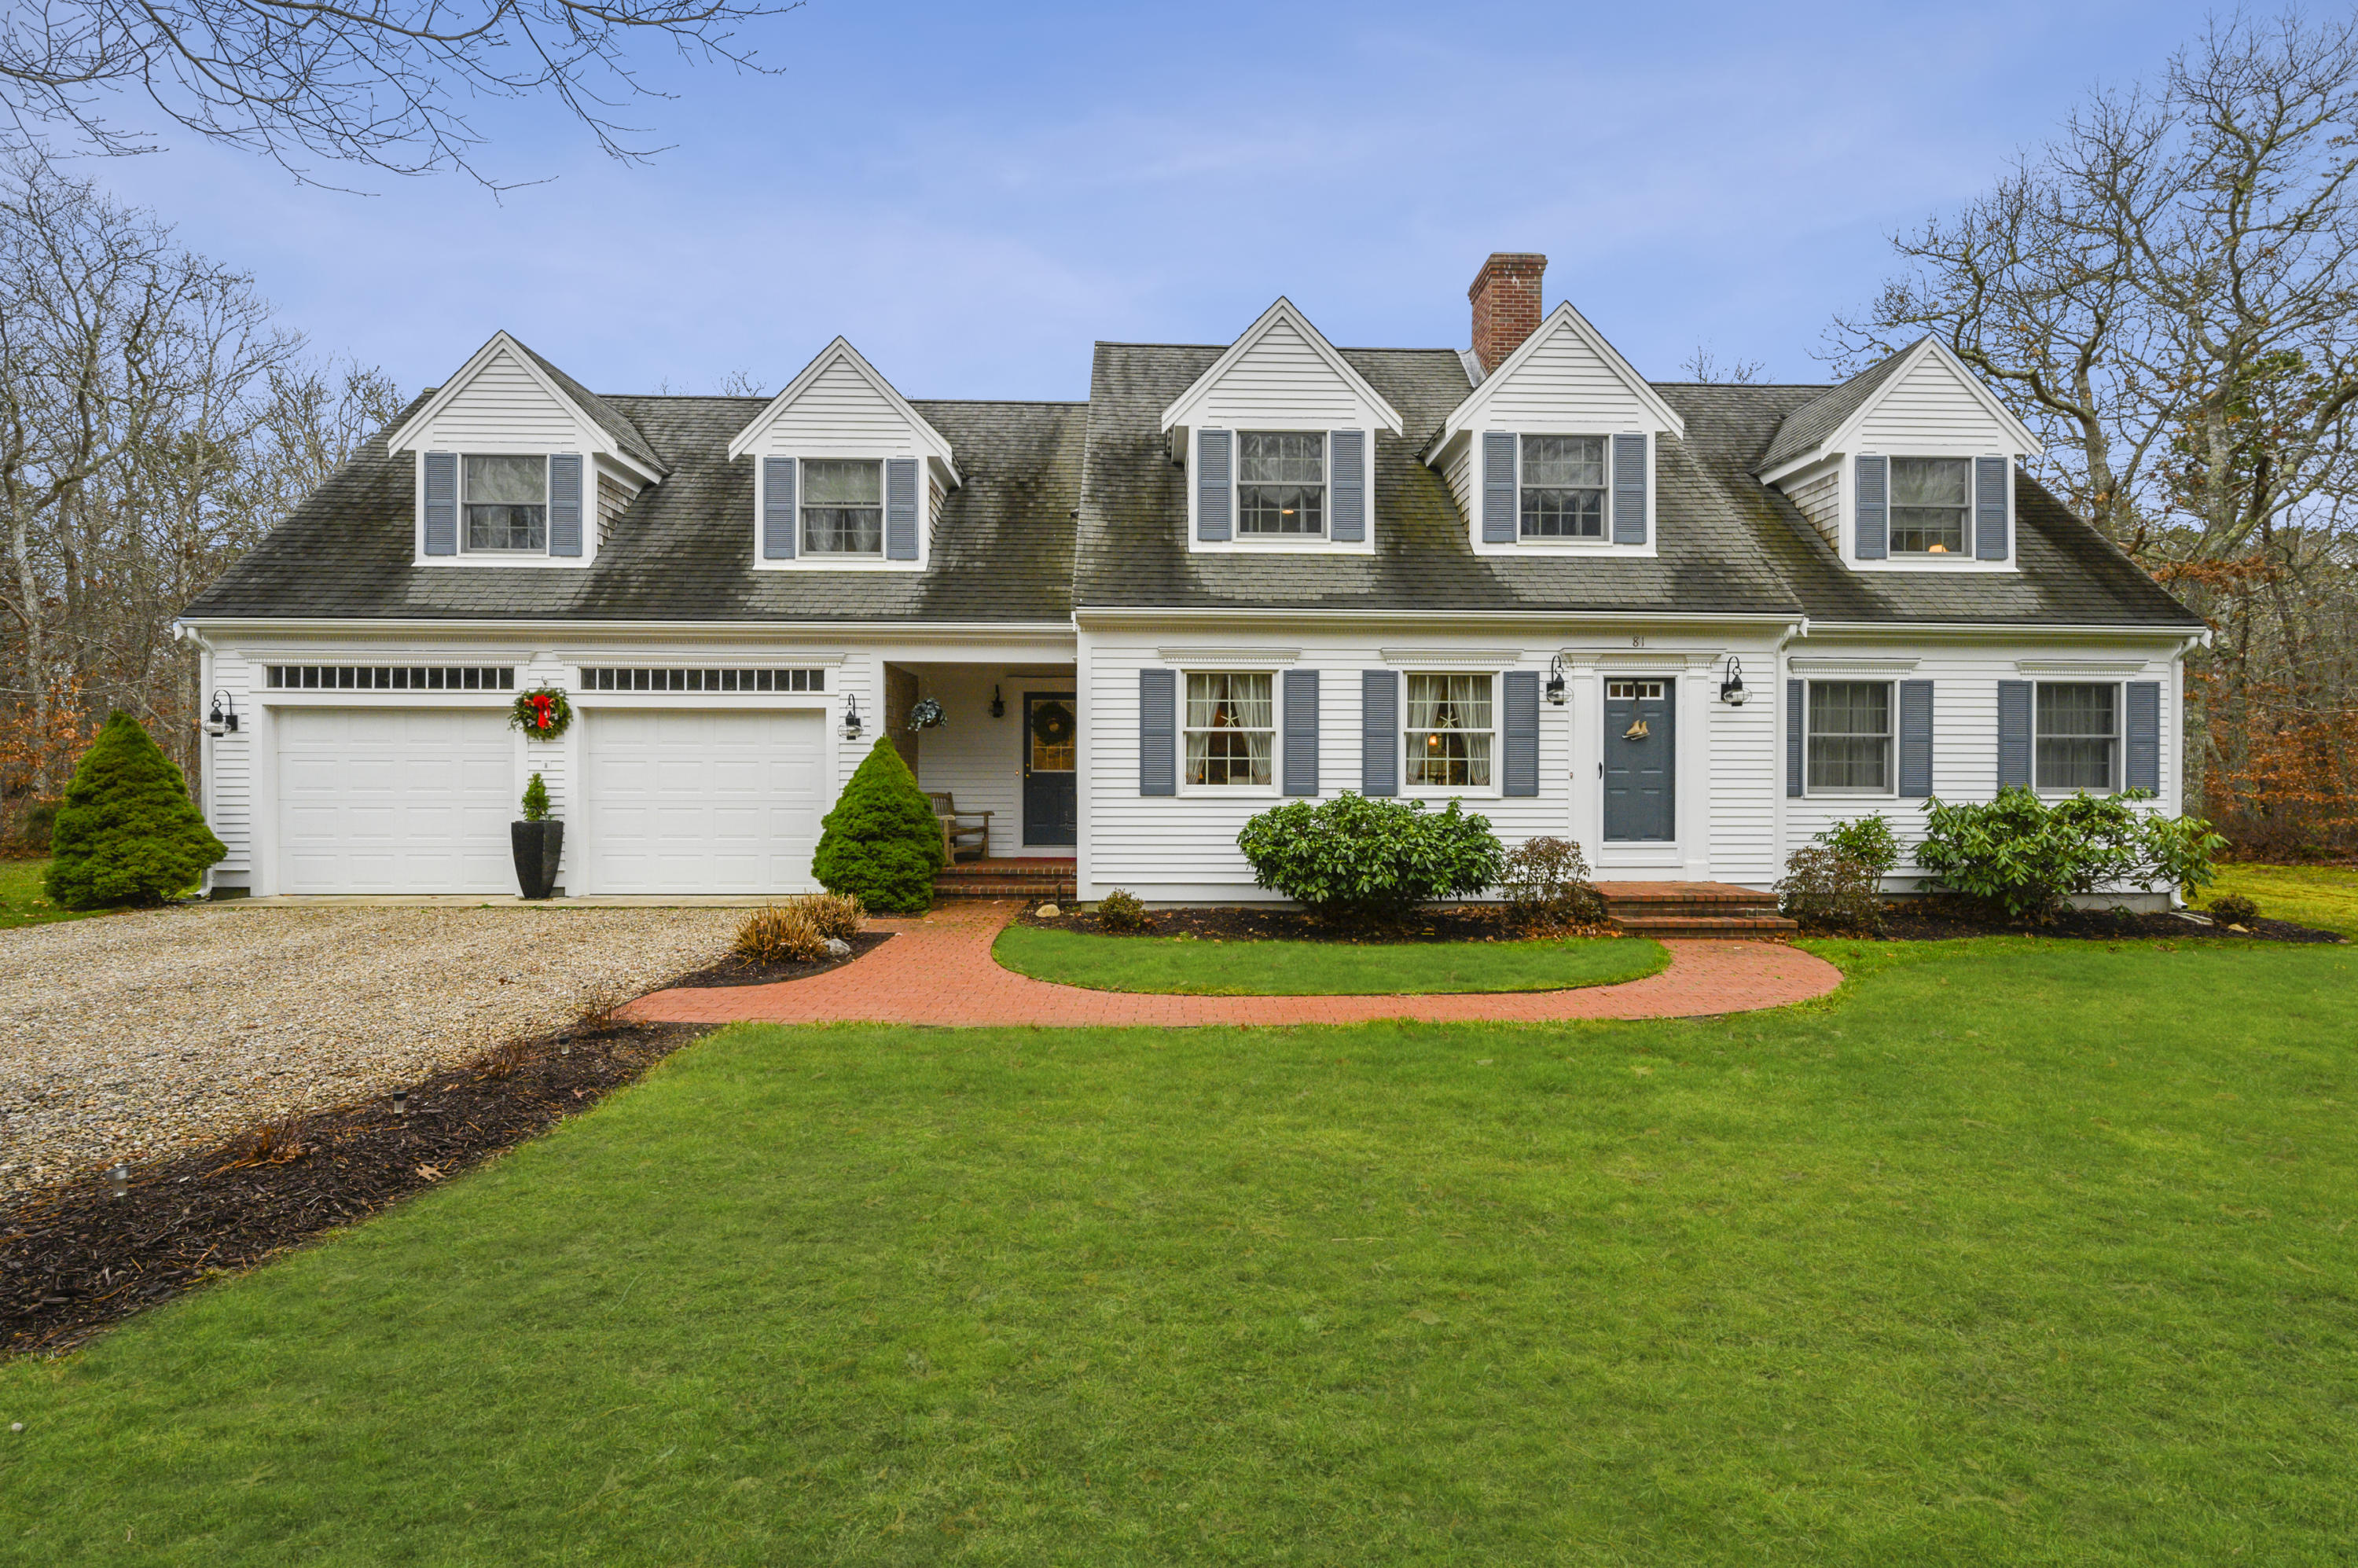 81 Scarborough Road, Brewster MA, 02631 sales details